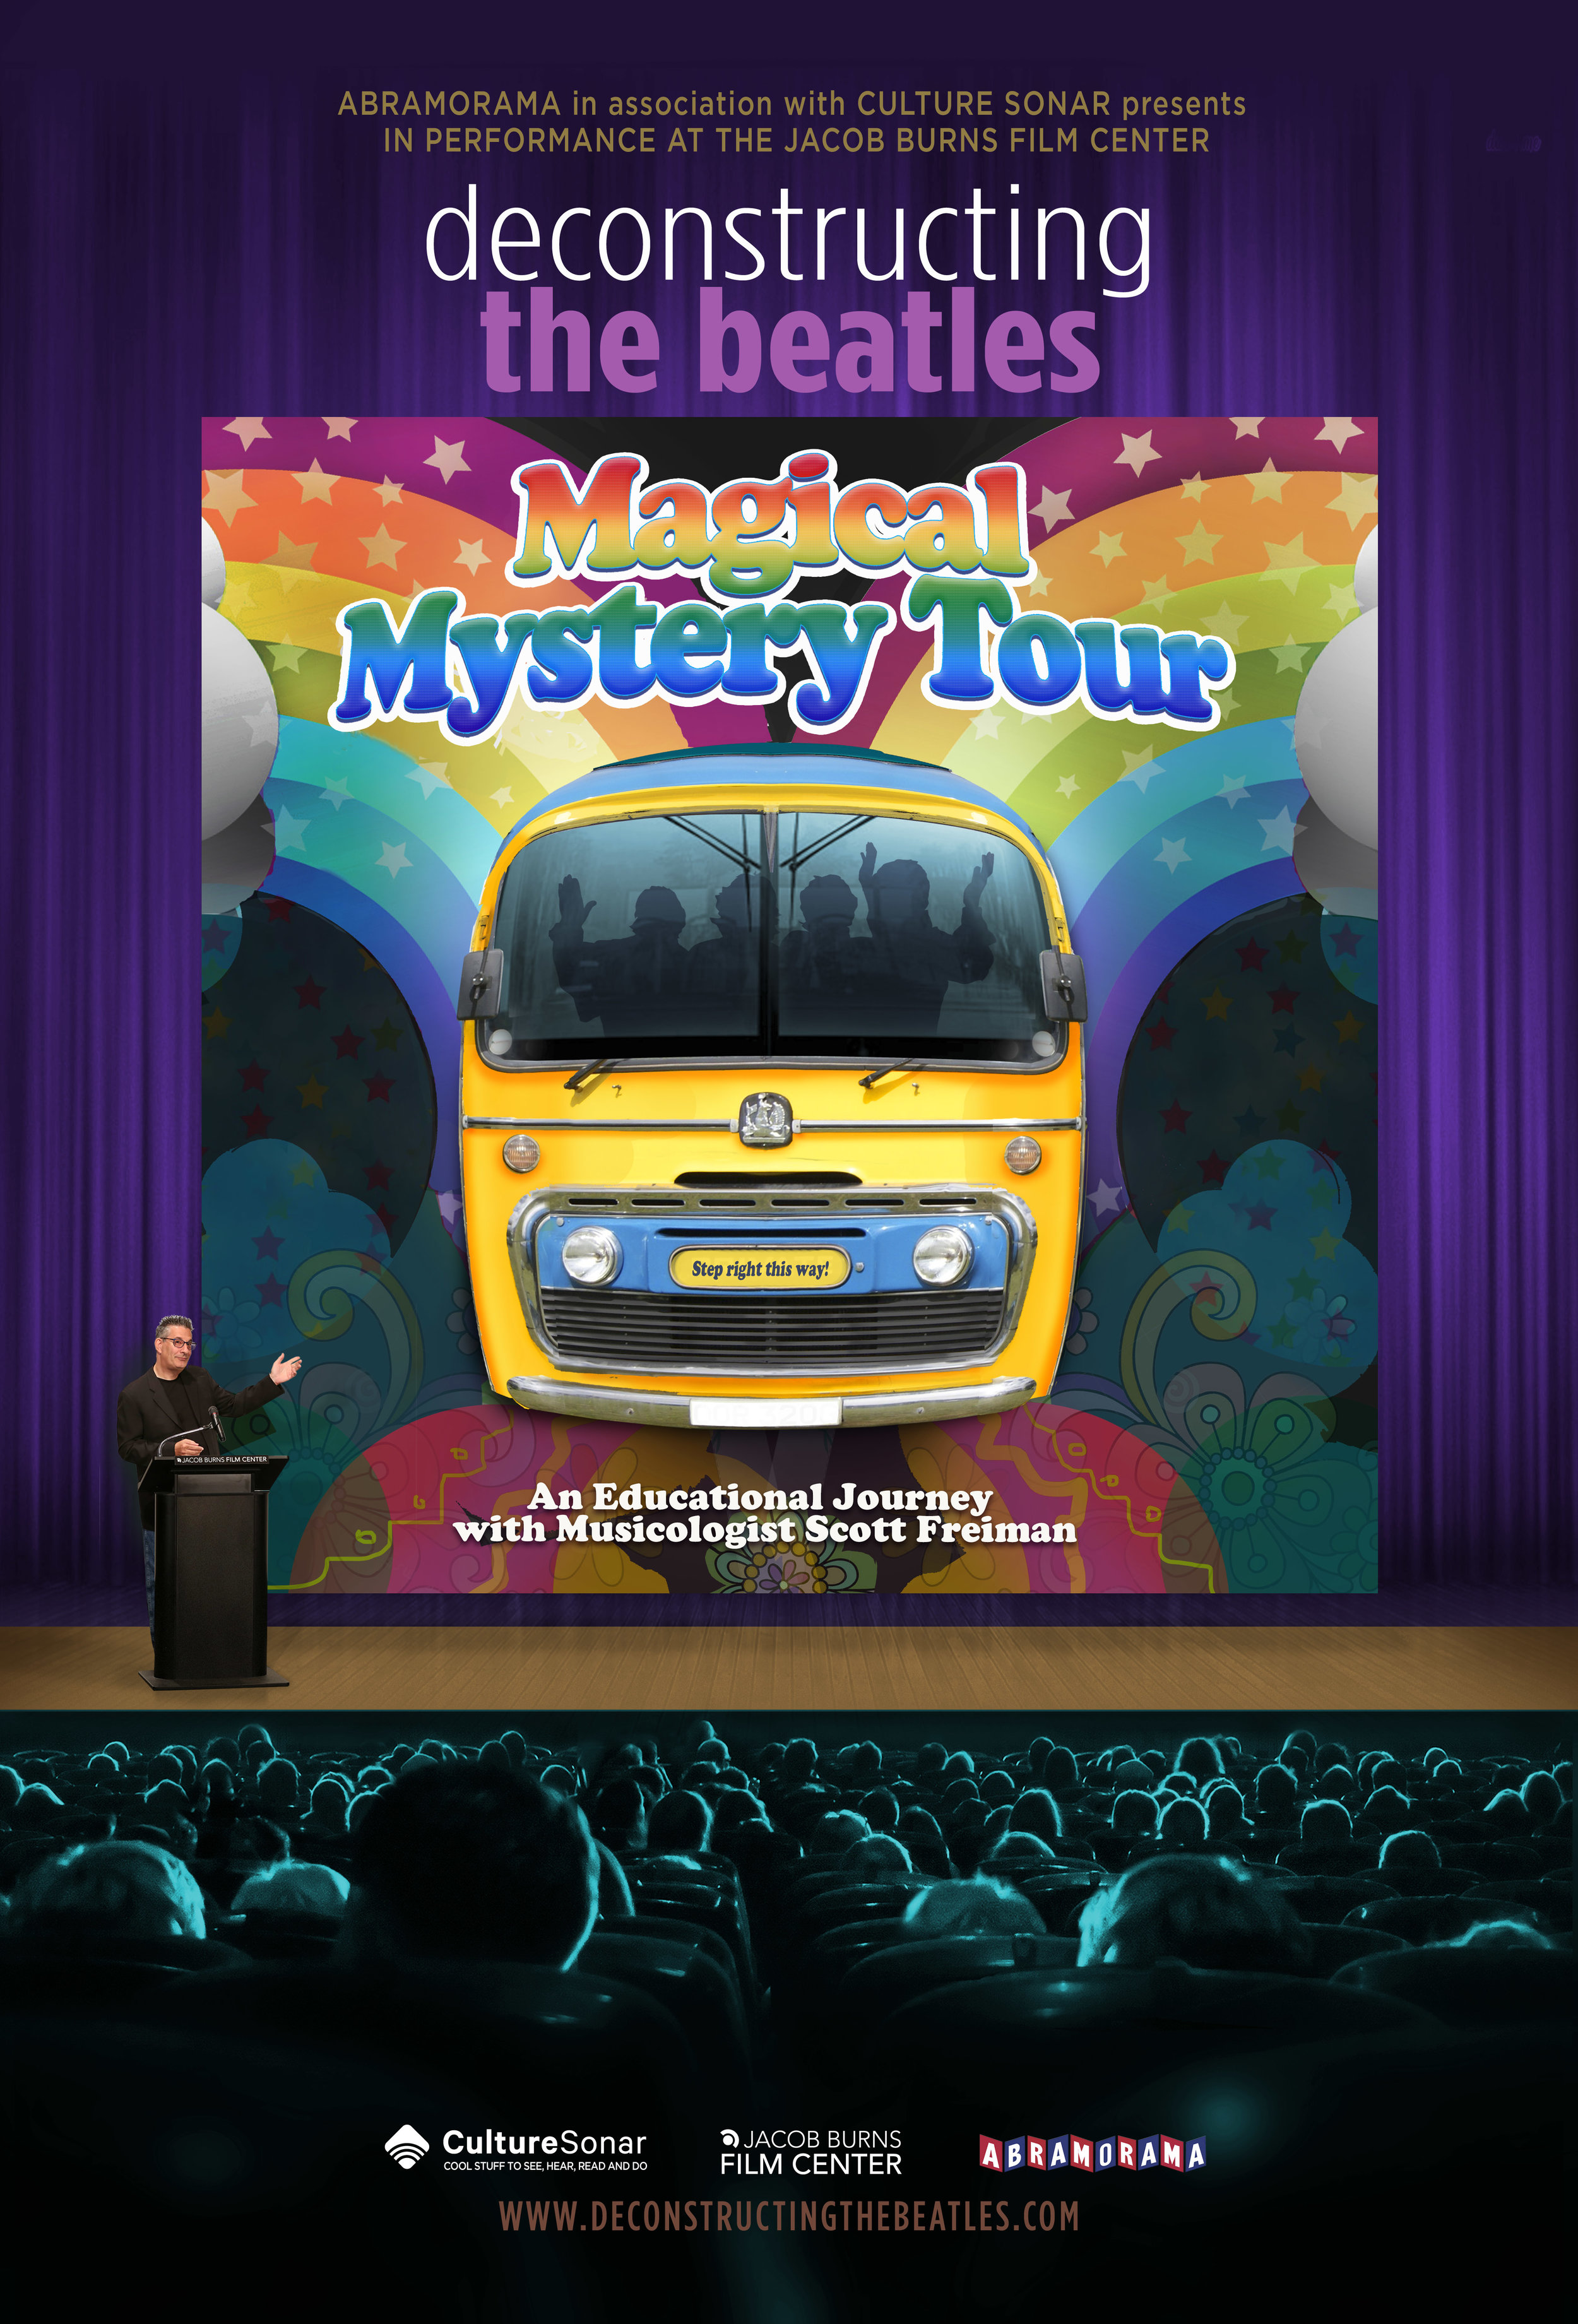 Deconstructing the Beatles: Magical Mystery Tour